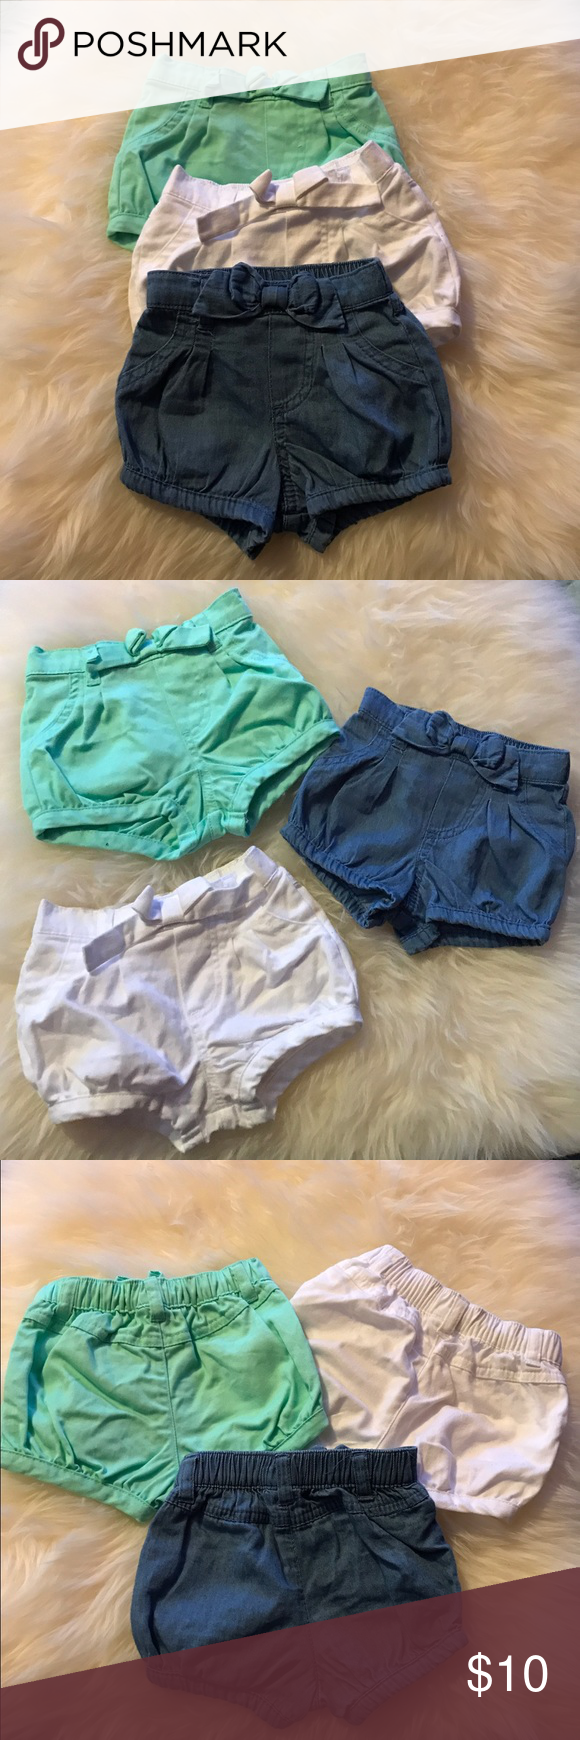 Shorts 3 Newborn Circo shorts. Never worn. NO TRADES. Circo Bottoms Shorts